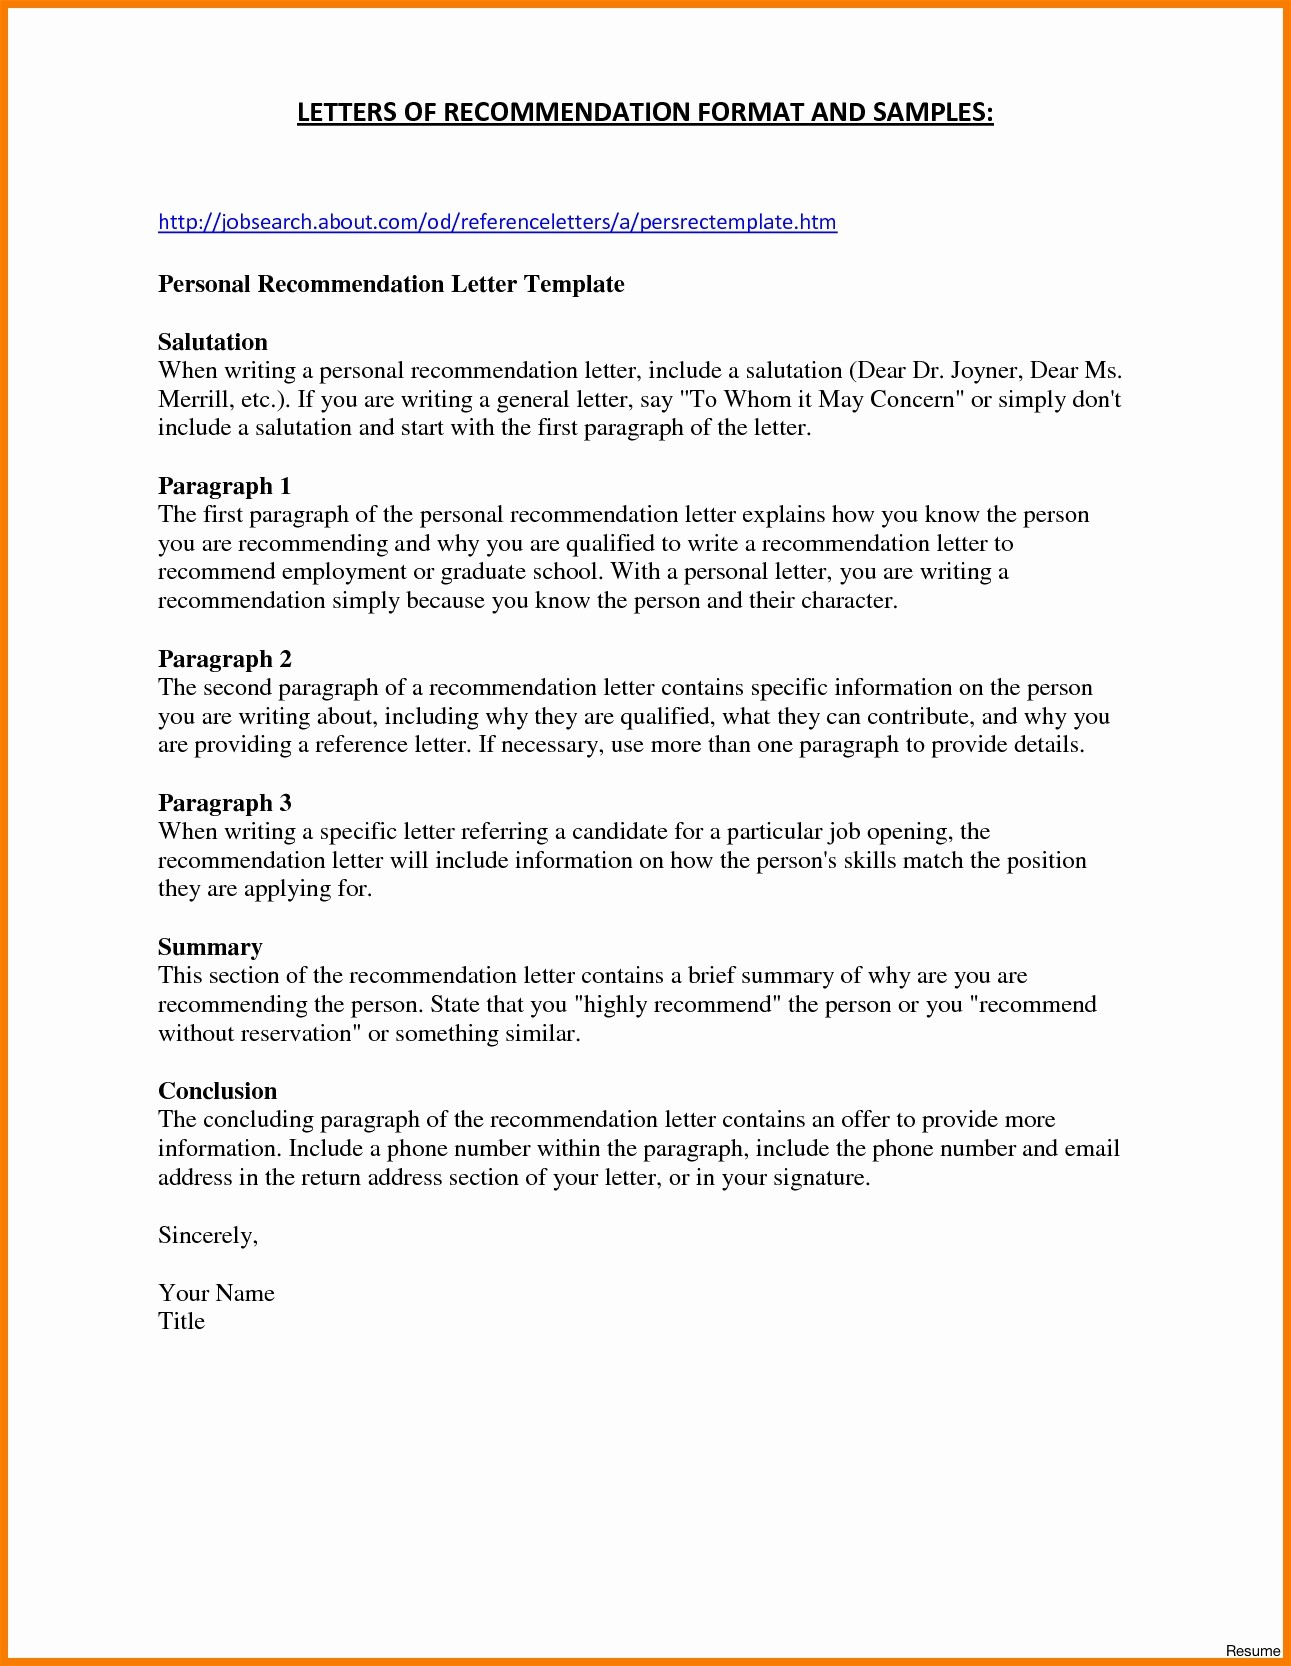 Rfp Award Letter Template - Writing A Proposal Letter for A Job Save Cover Letter for Bid